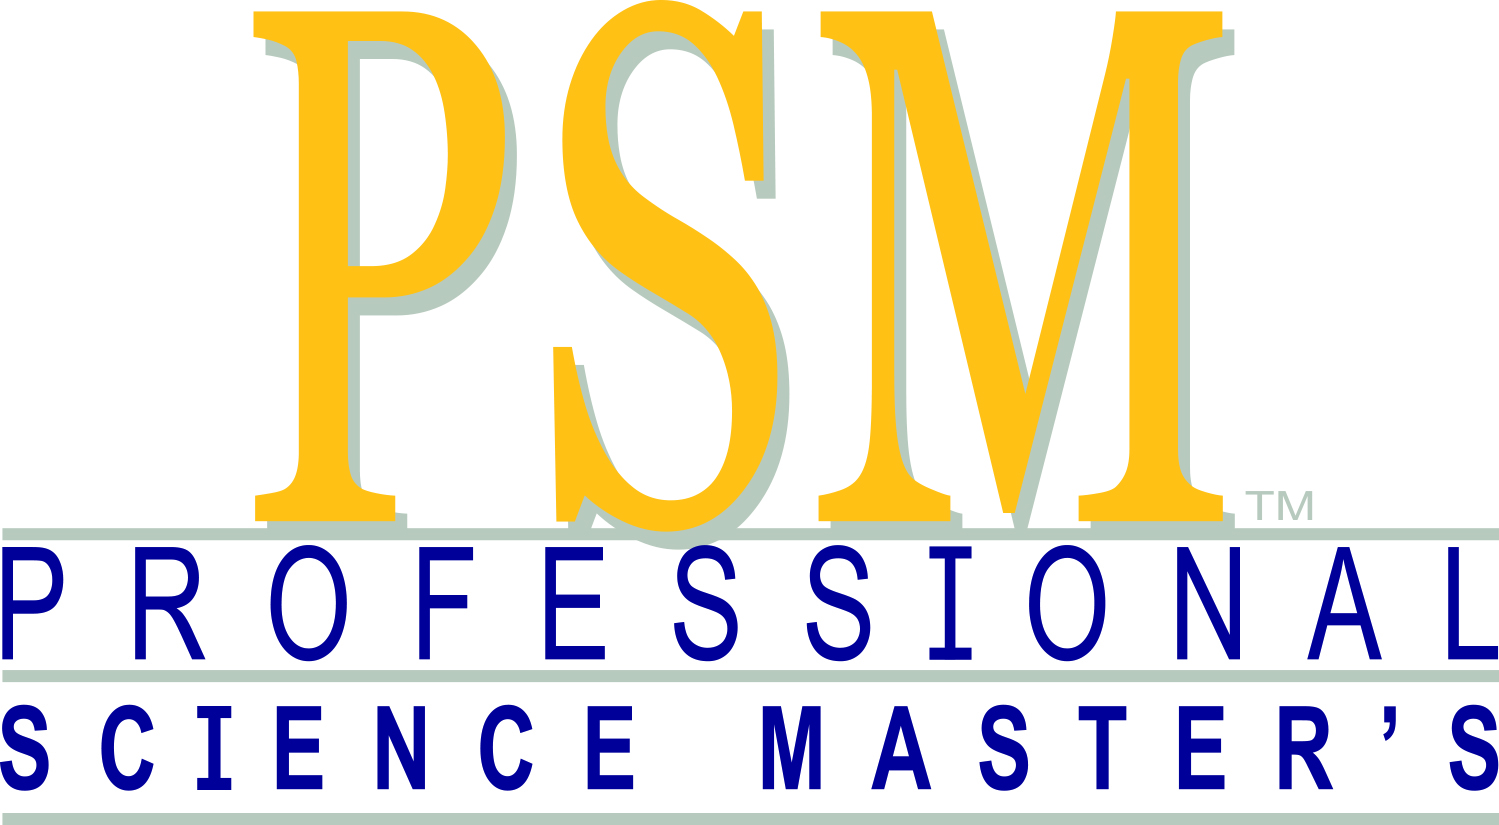 Professional Science Master's (PSMs)